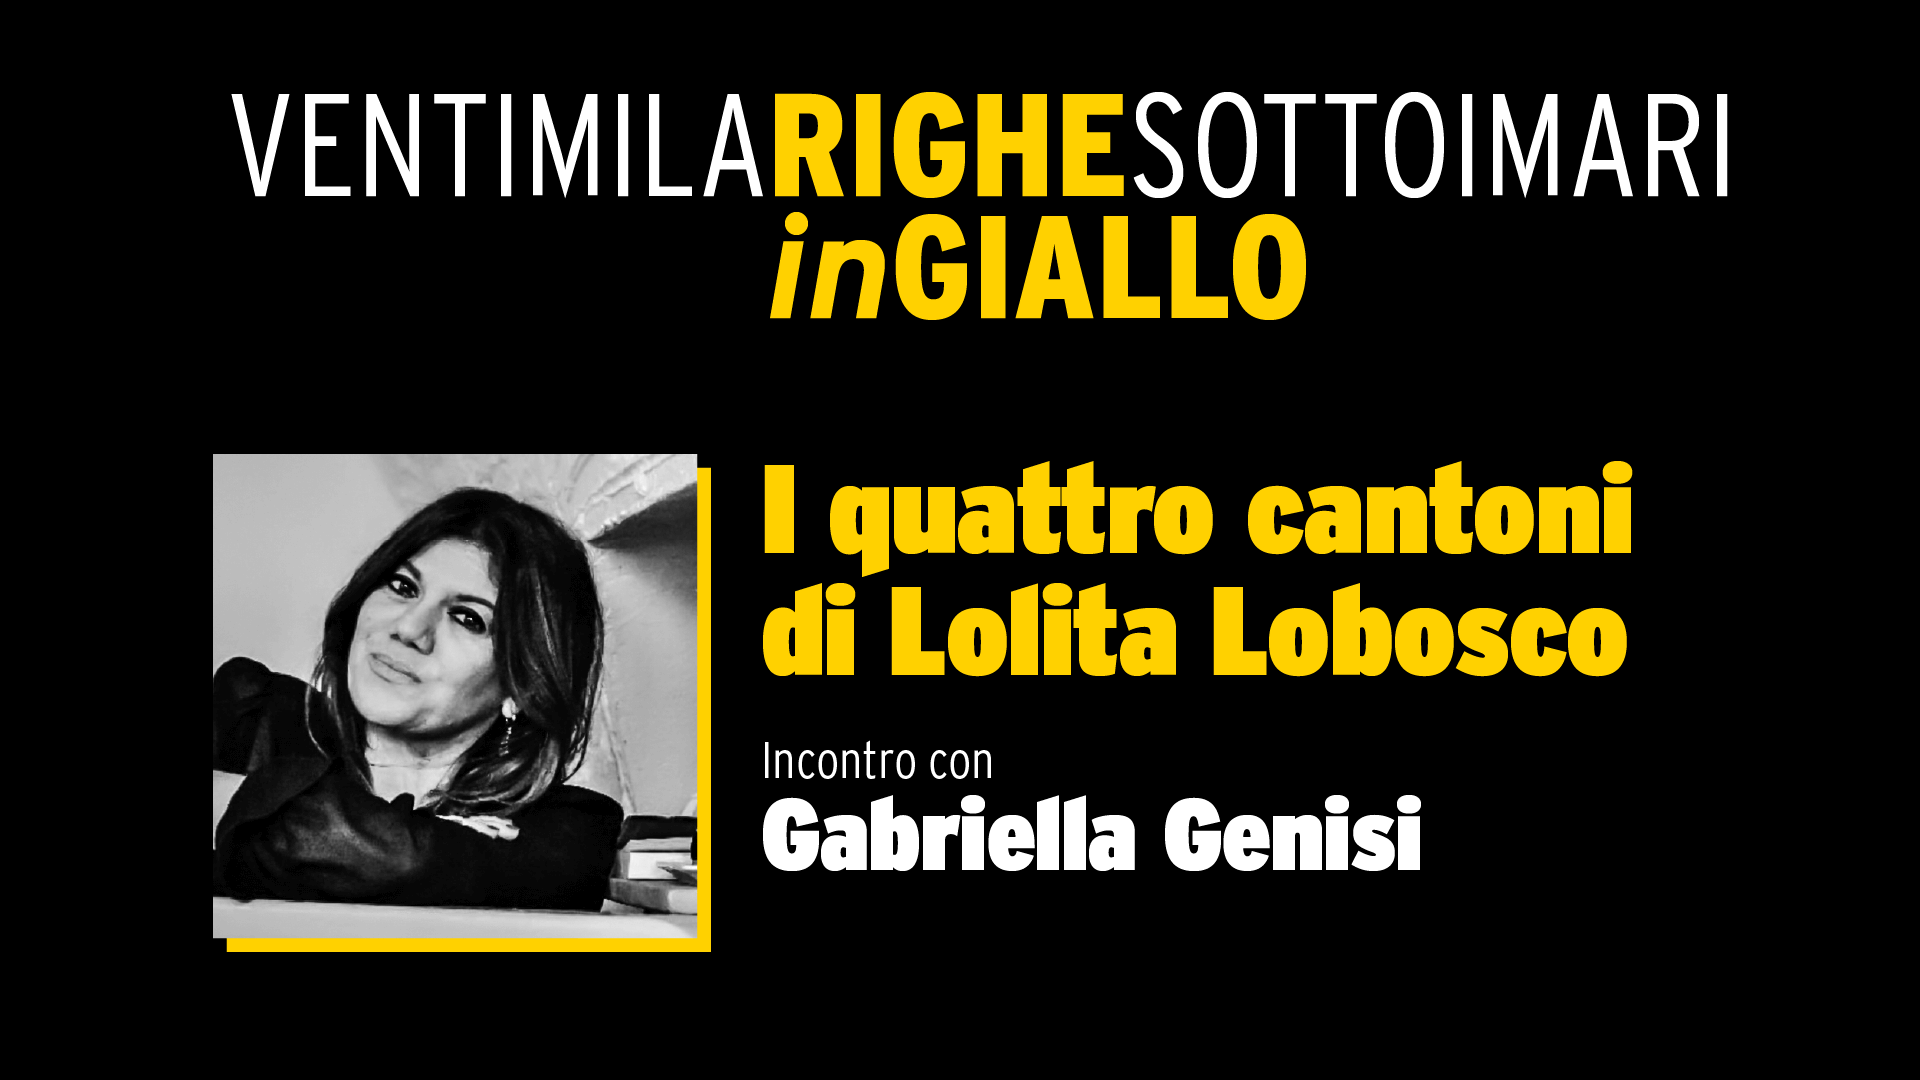 I quattro cantoni  di Lolita Lobosco - Video Integrale